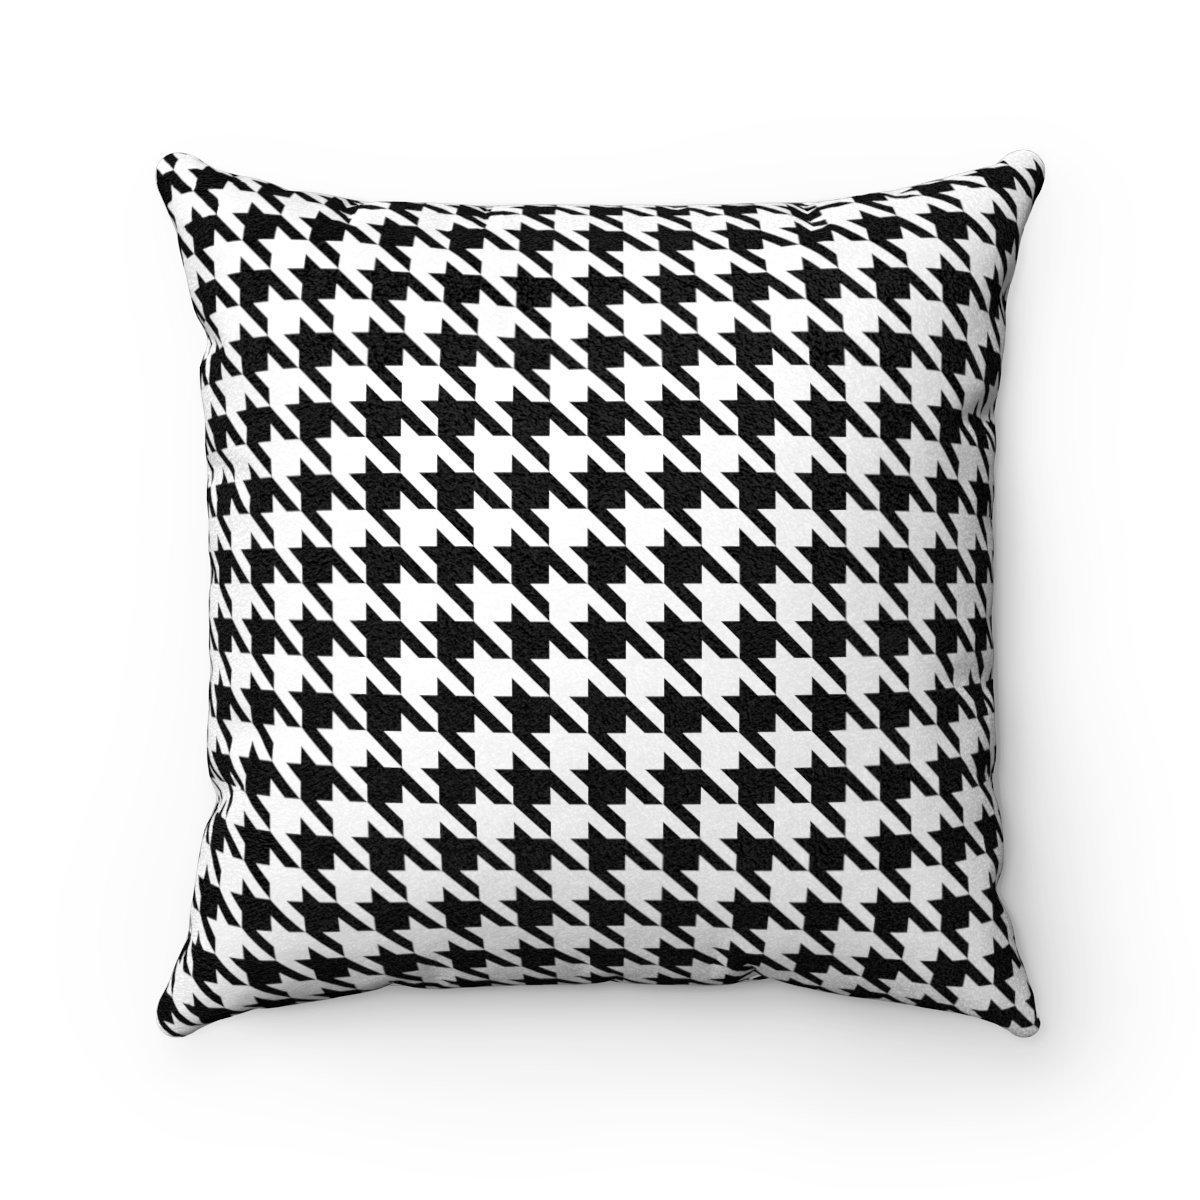 Geometric animal-friendly microfiber decorative pillow w/insert-Home Decor - Decorative Accents - Pillows & Throws - Decorative Pillows-Maison d'Elite-Très Elite